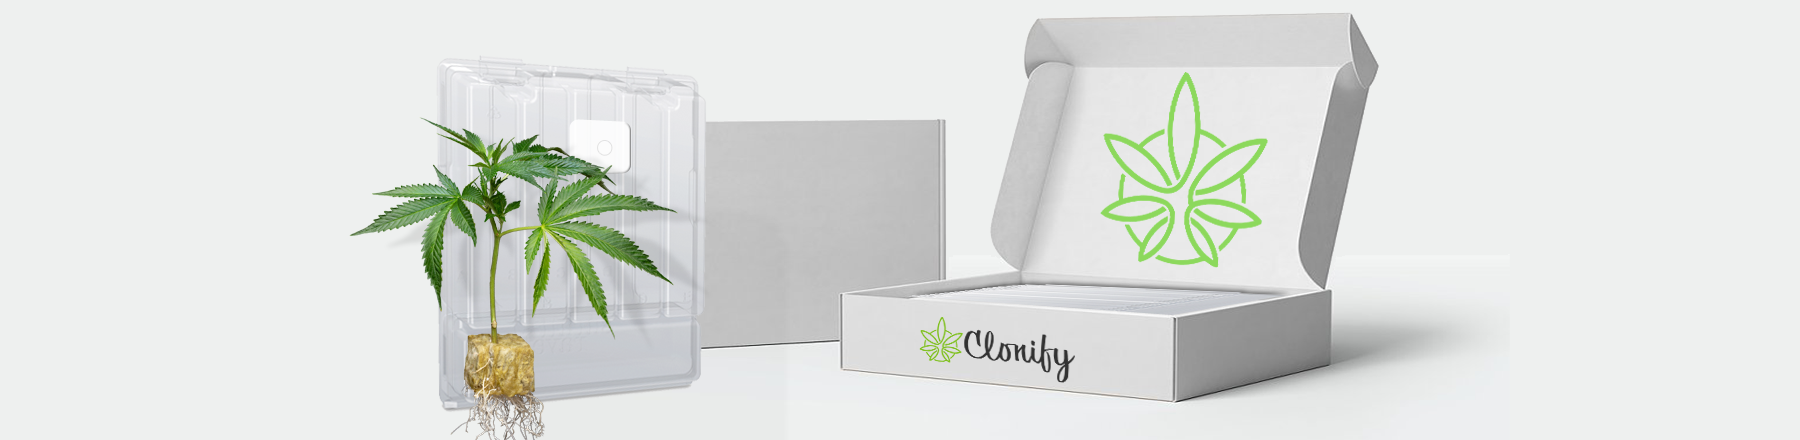 Clonify Subscription Box - Clone of the month program